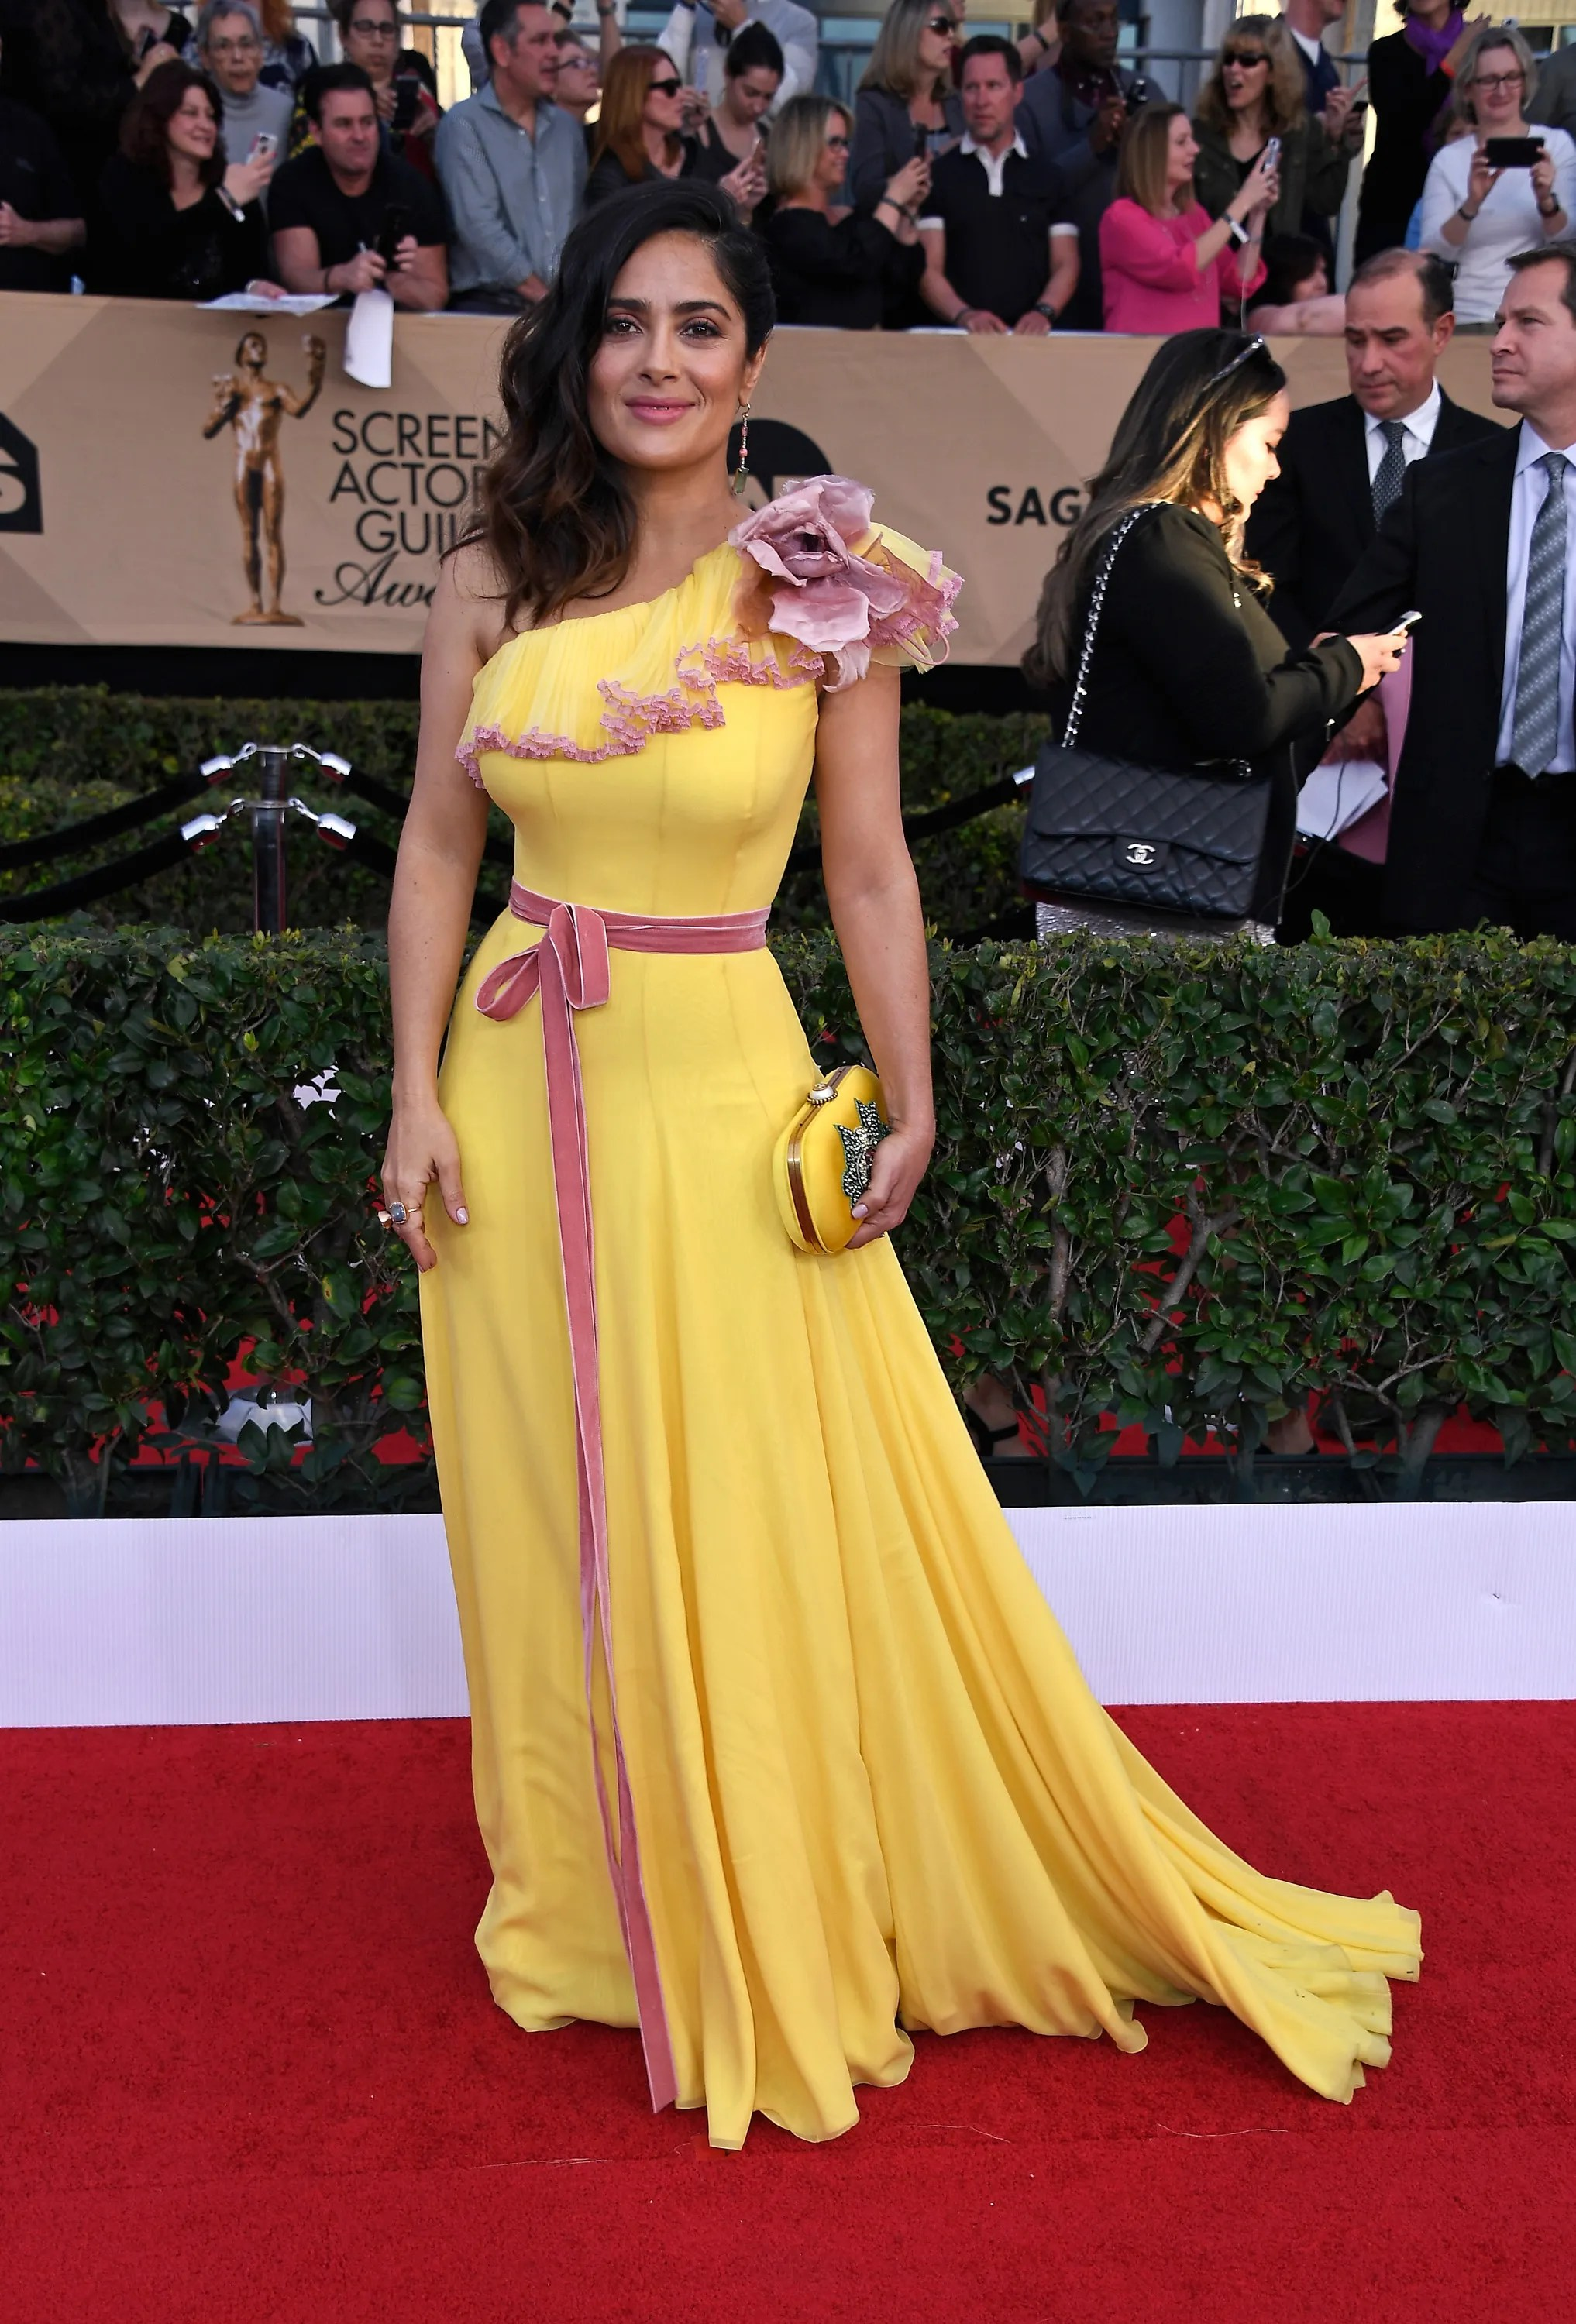 Roter Teppich Los Angeles Sag Awards 2017 All The Celebrity Fashion From The Red Carpet Vogue